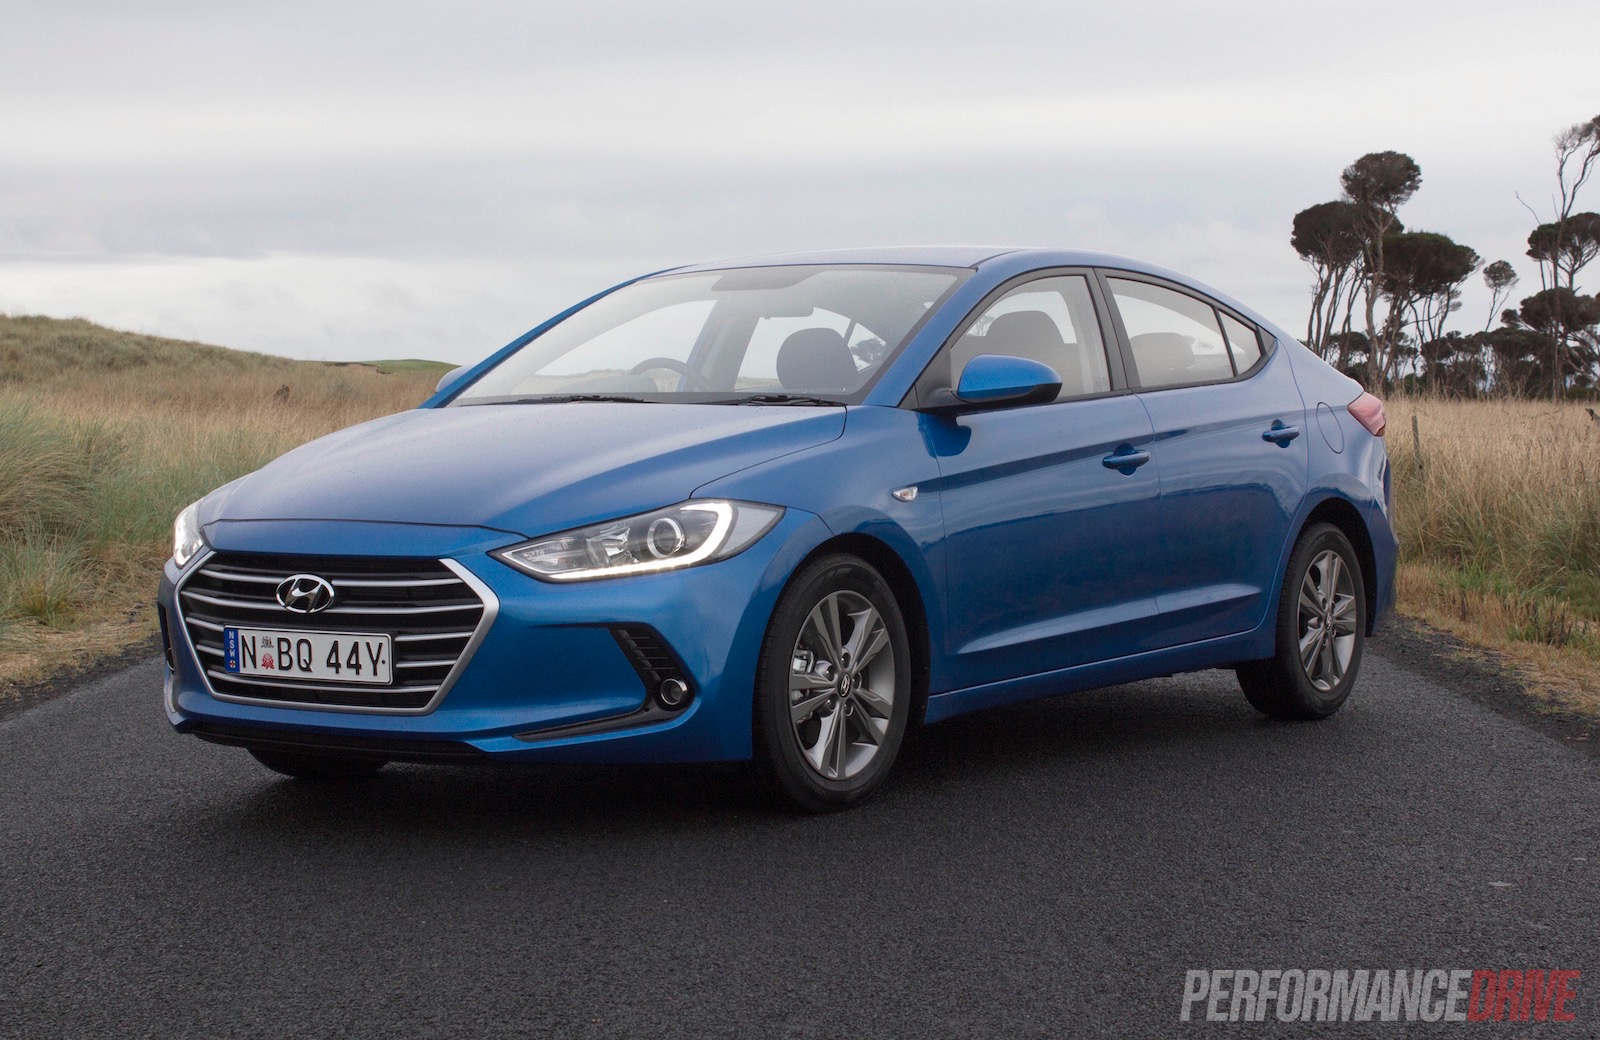 2016 hyundai elantra review australian launch performancedrive. Black Bedroom Furniture Sets. Home Design Ideas